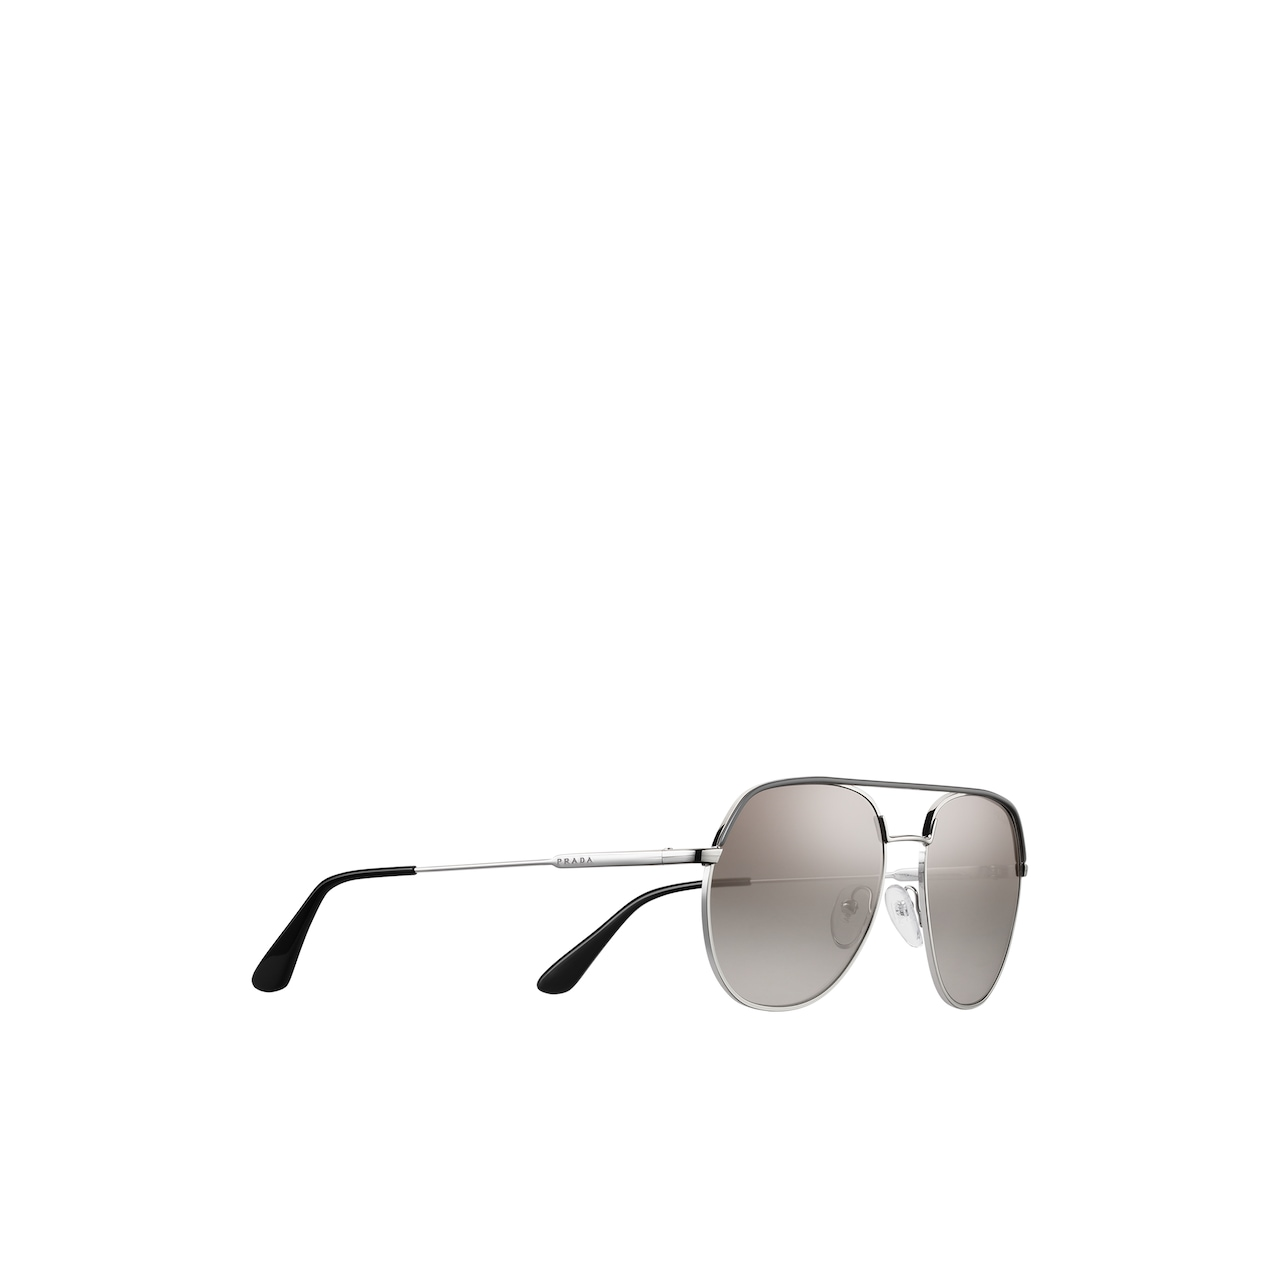 Prada Prada Eyewear Collection 3